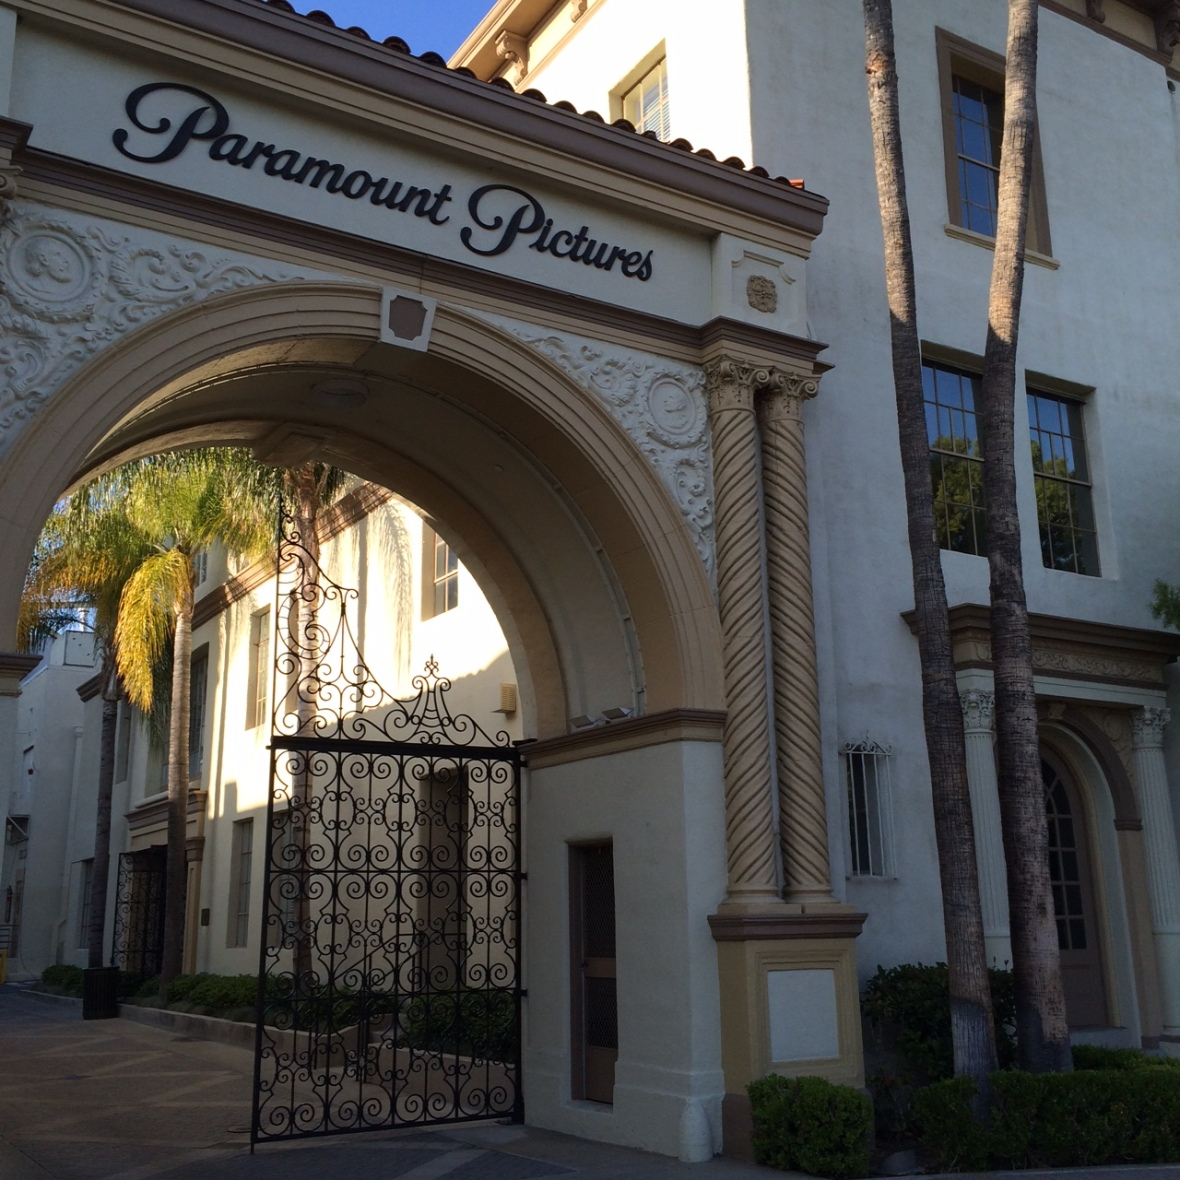 One of the original gates when streets still ran through the studio lot